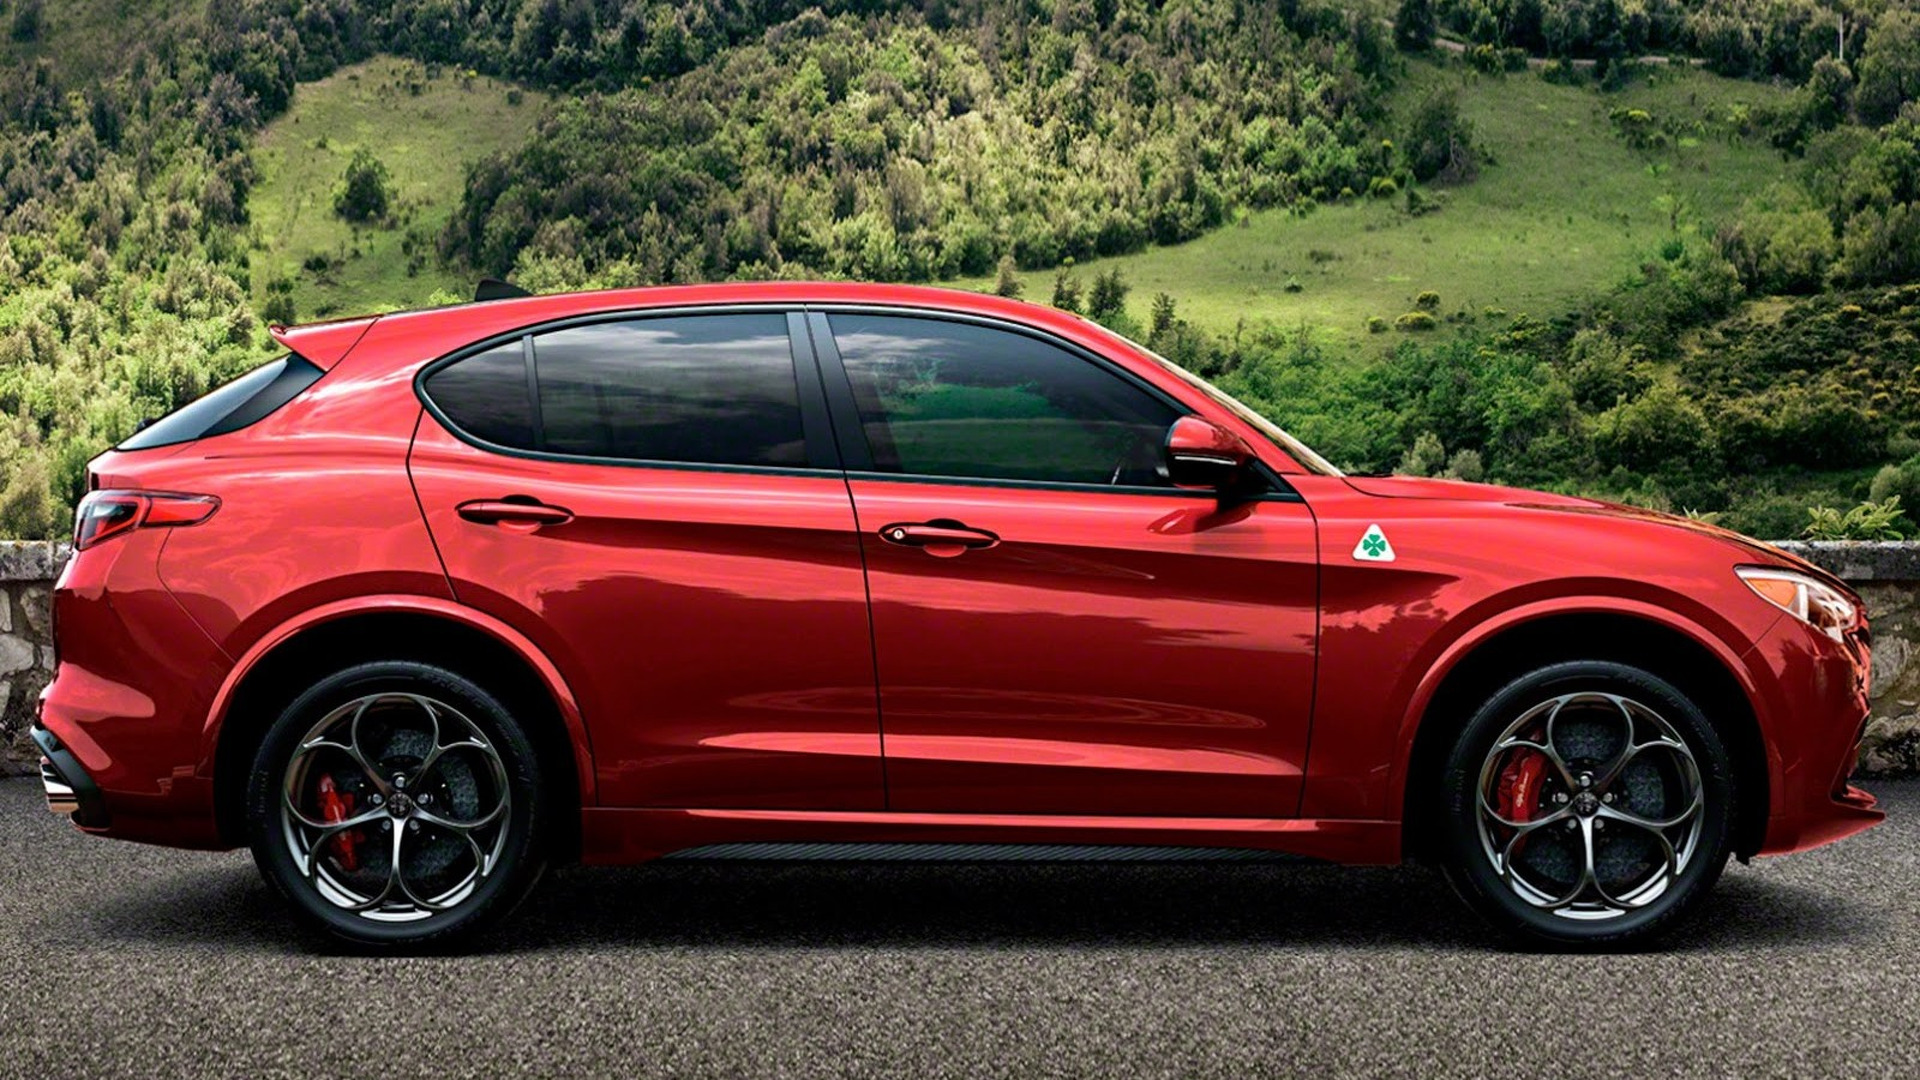 alfa romeo stelvio als quadrifoglio enth llt alles auto. Black Bedroom Furniture Sets. Home Design Ideas